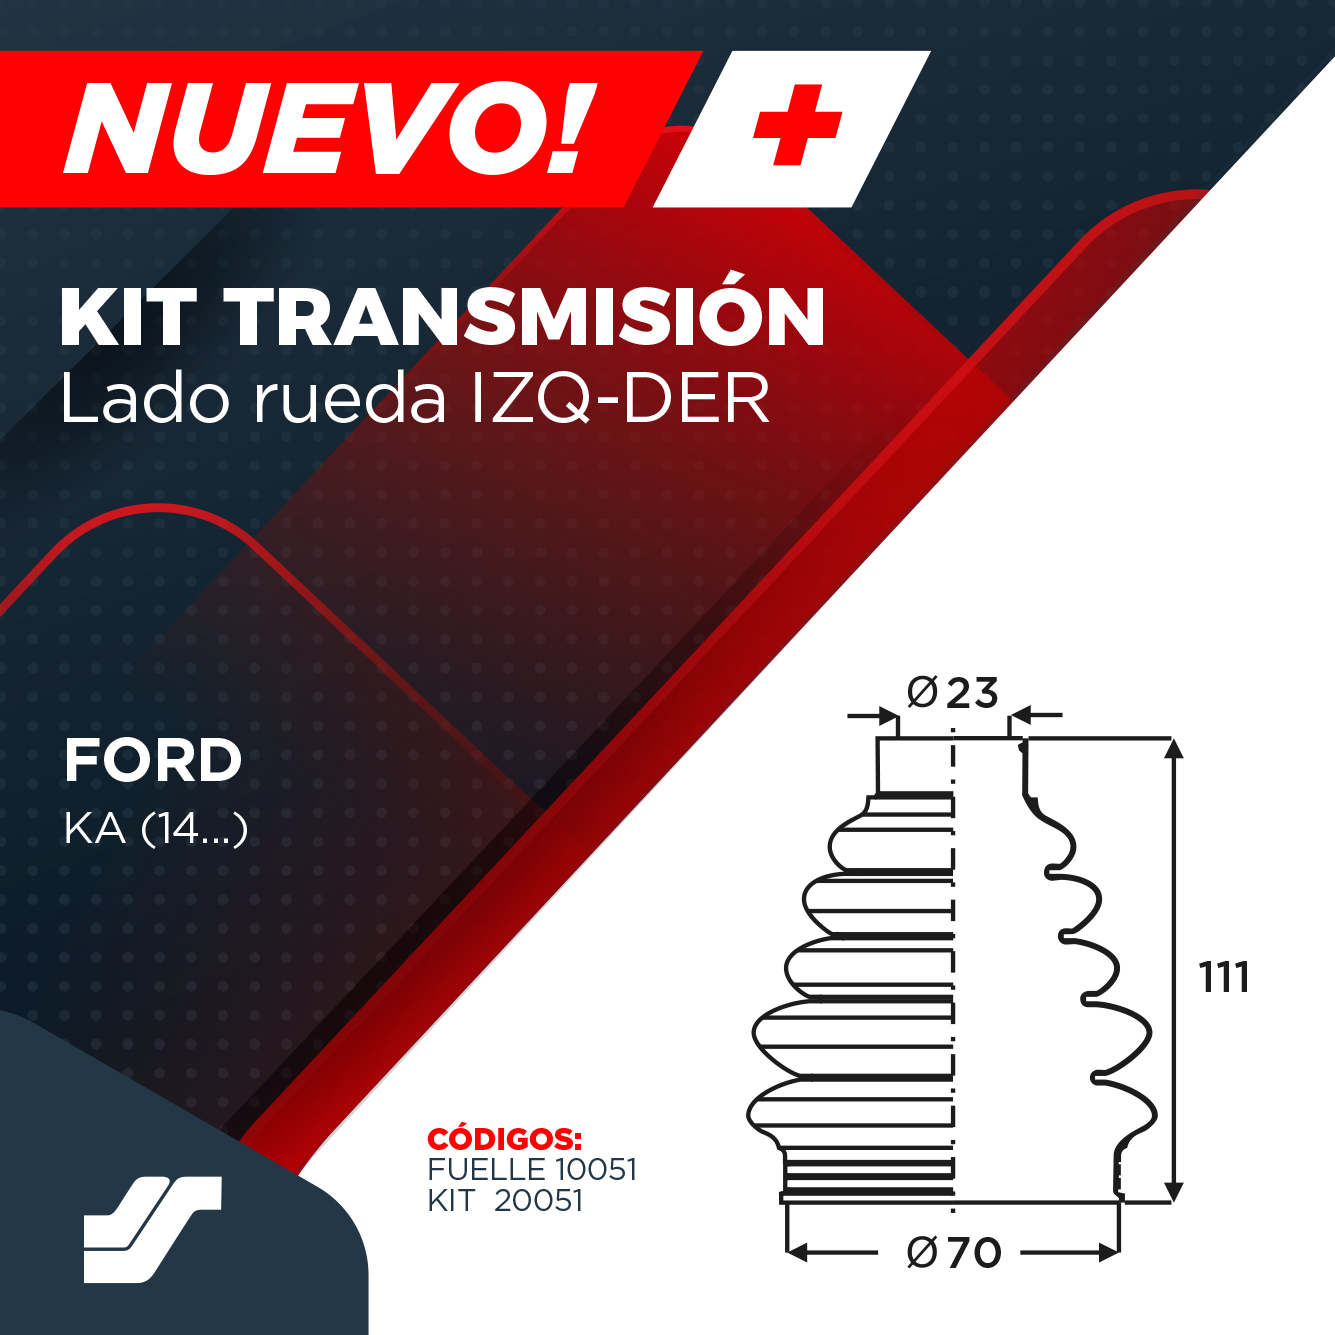 KIT TRANSMISIÓN FORD KA